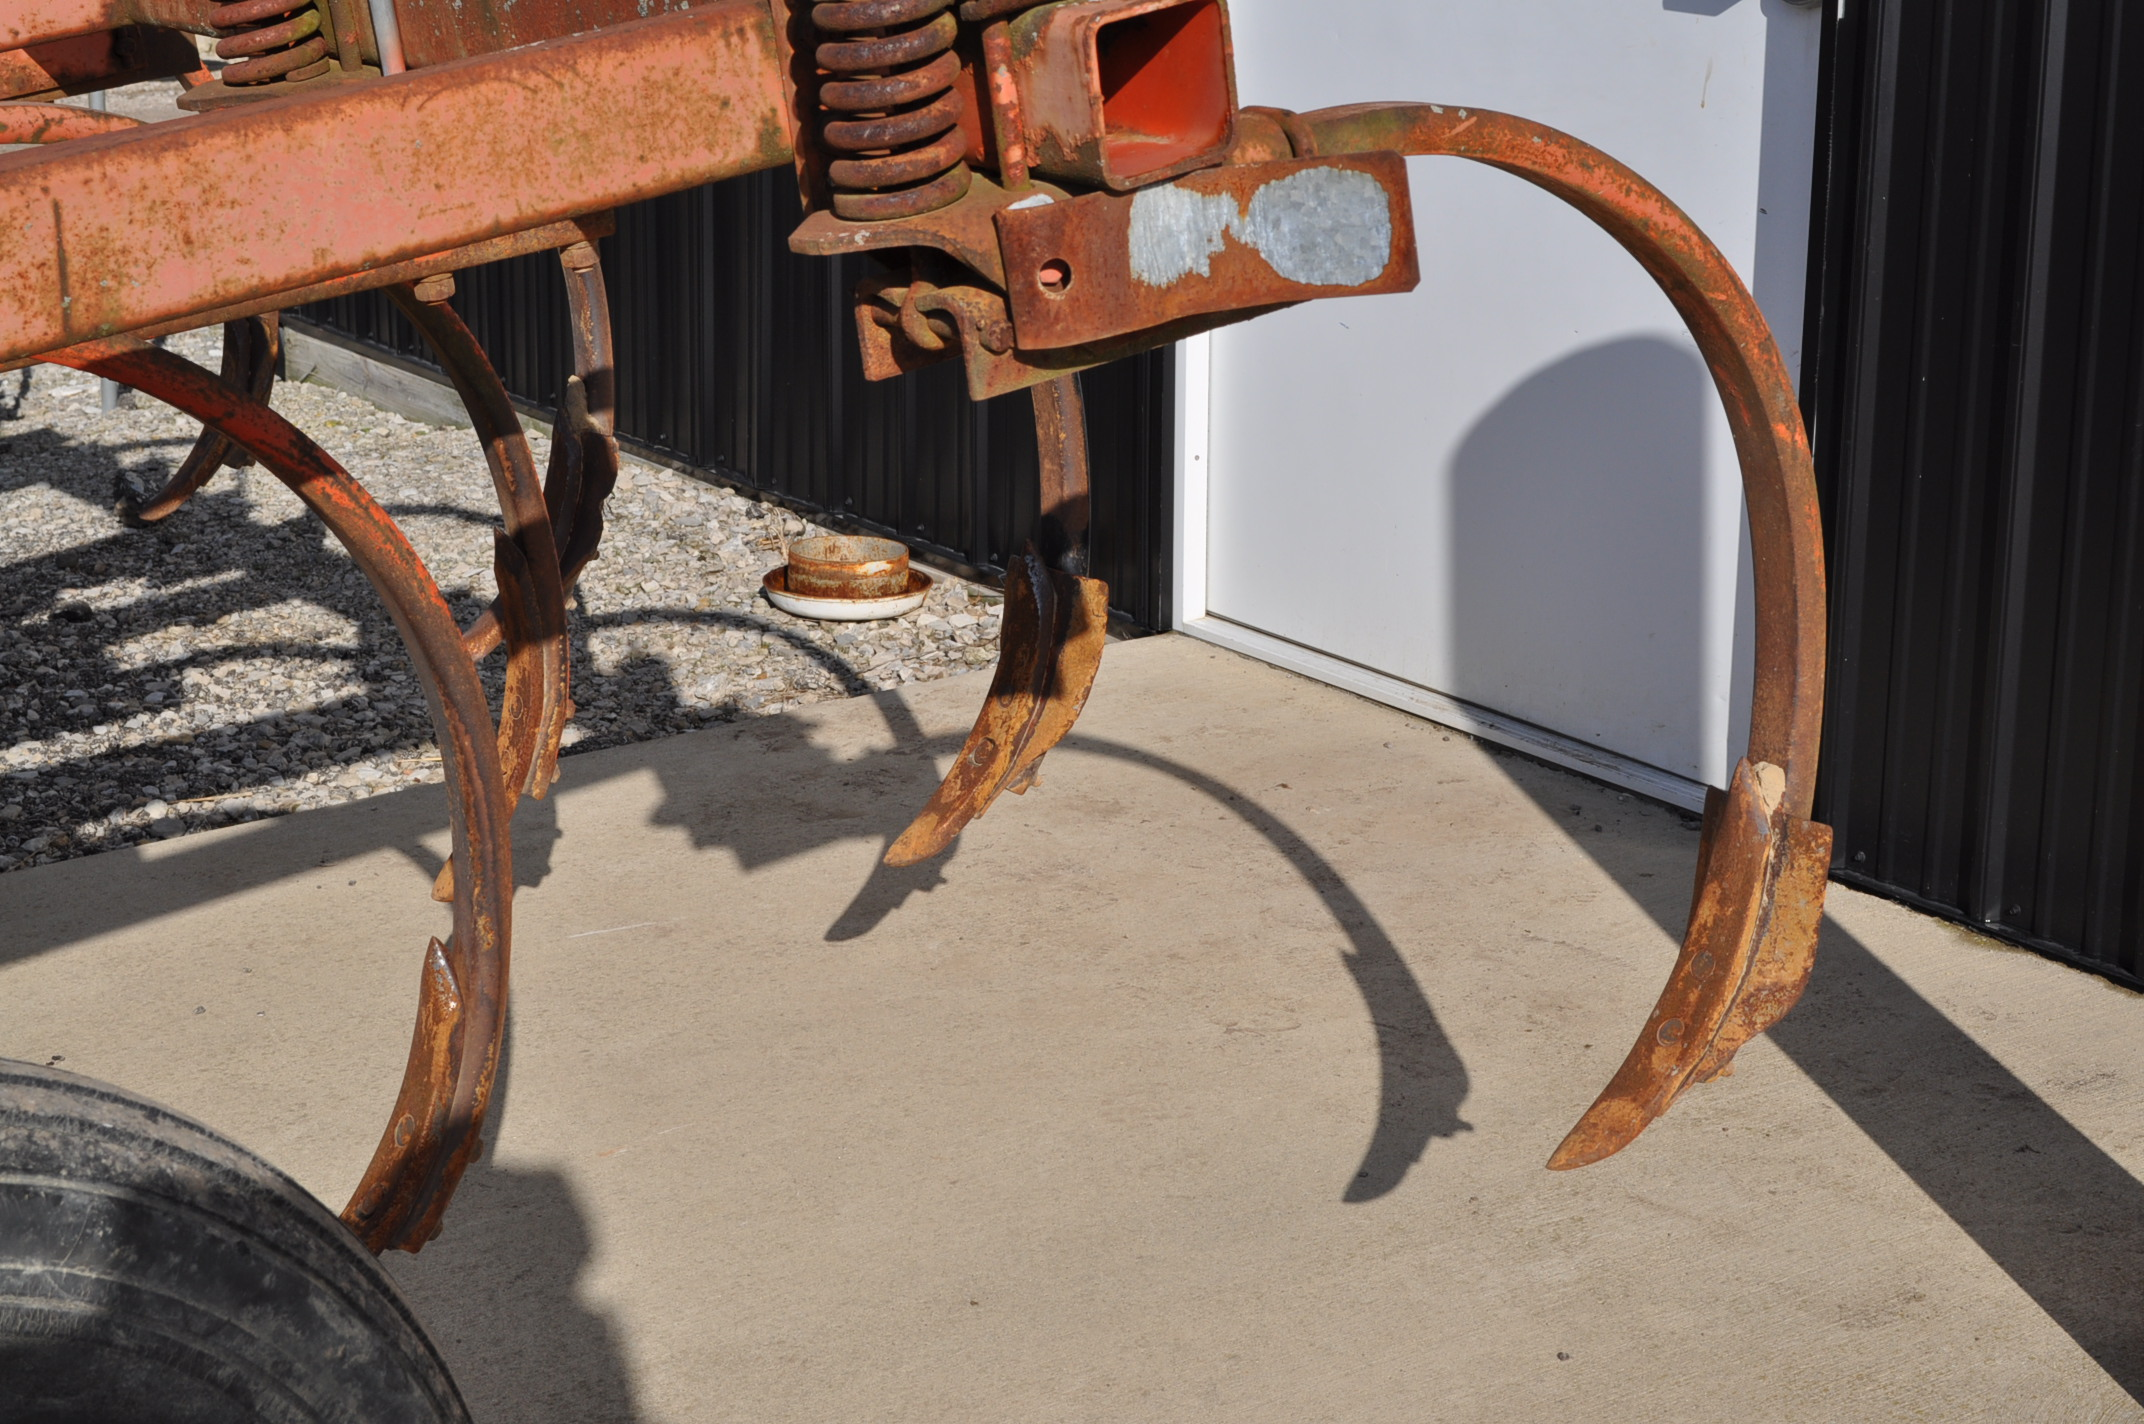 Allis Chalmers chisel plow, 10 shank, hyd raise - Image 6 of 7